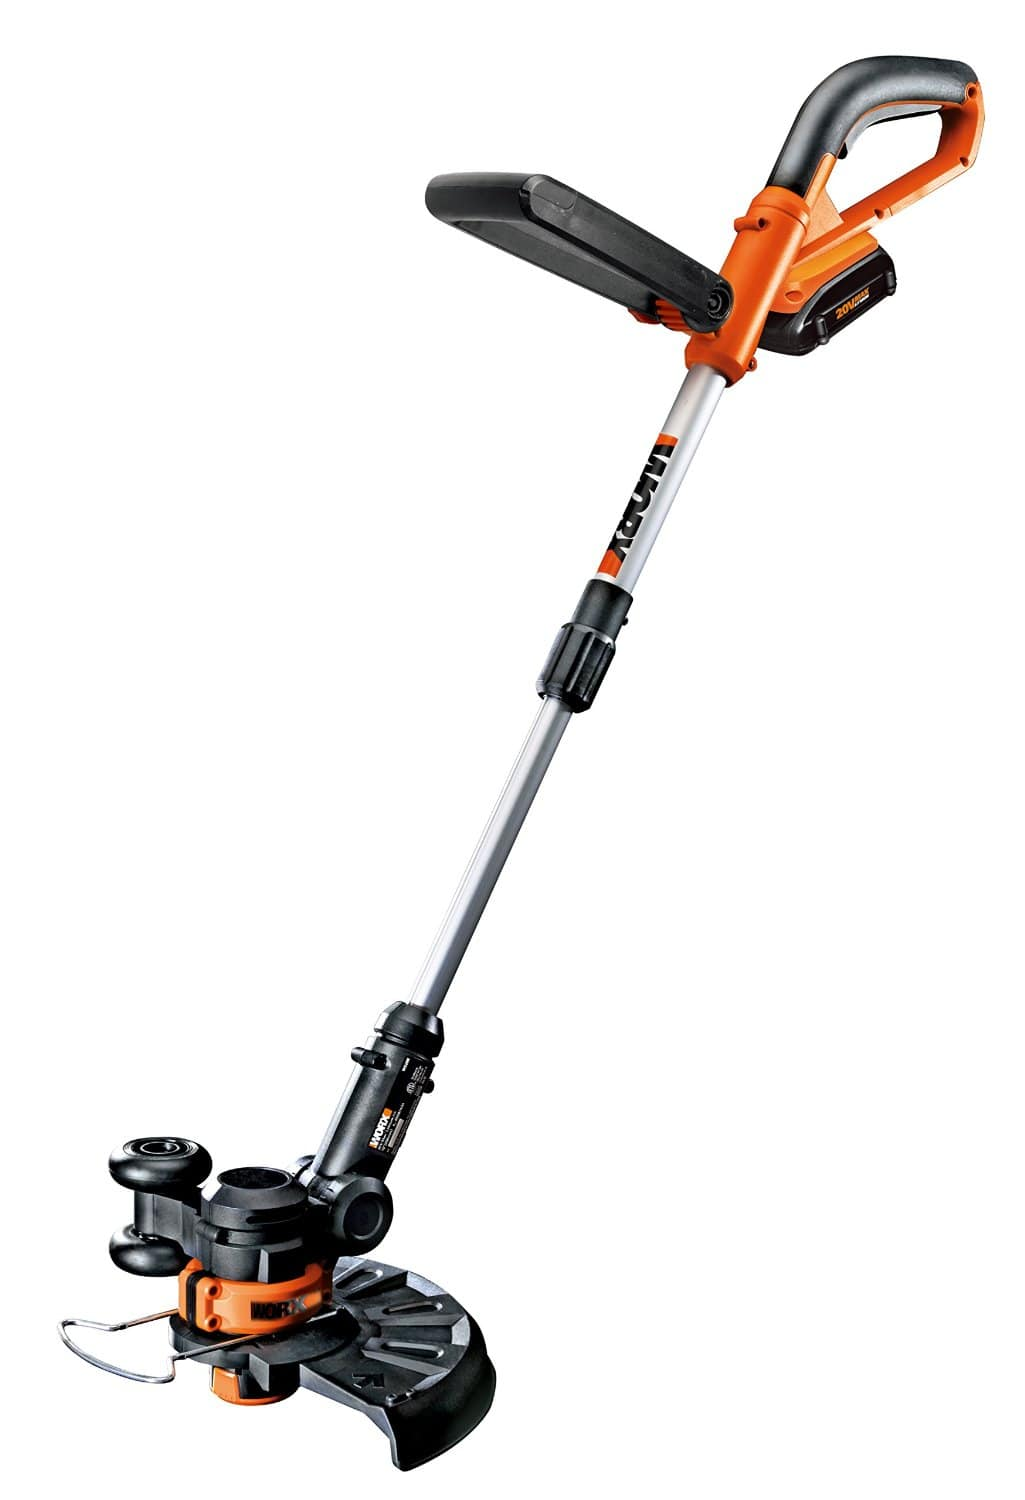 WORX WG156 Worx GT 20V Lithium Cordless Grass Trimmer with 2 Batteries $59.99 with free shipping